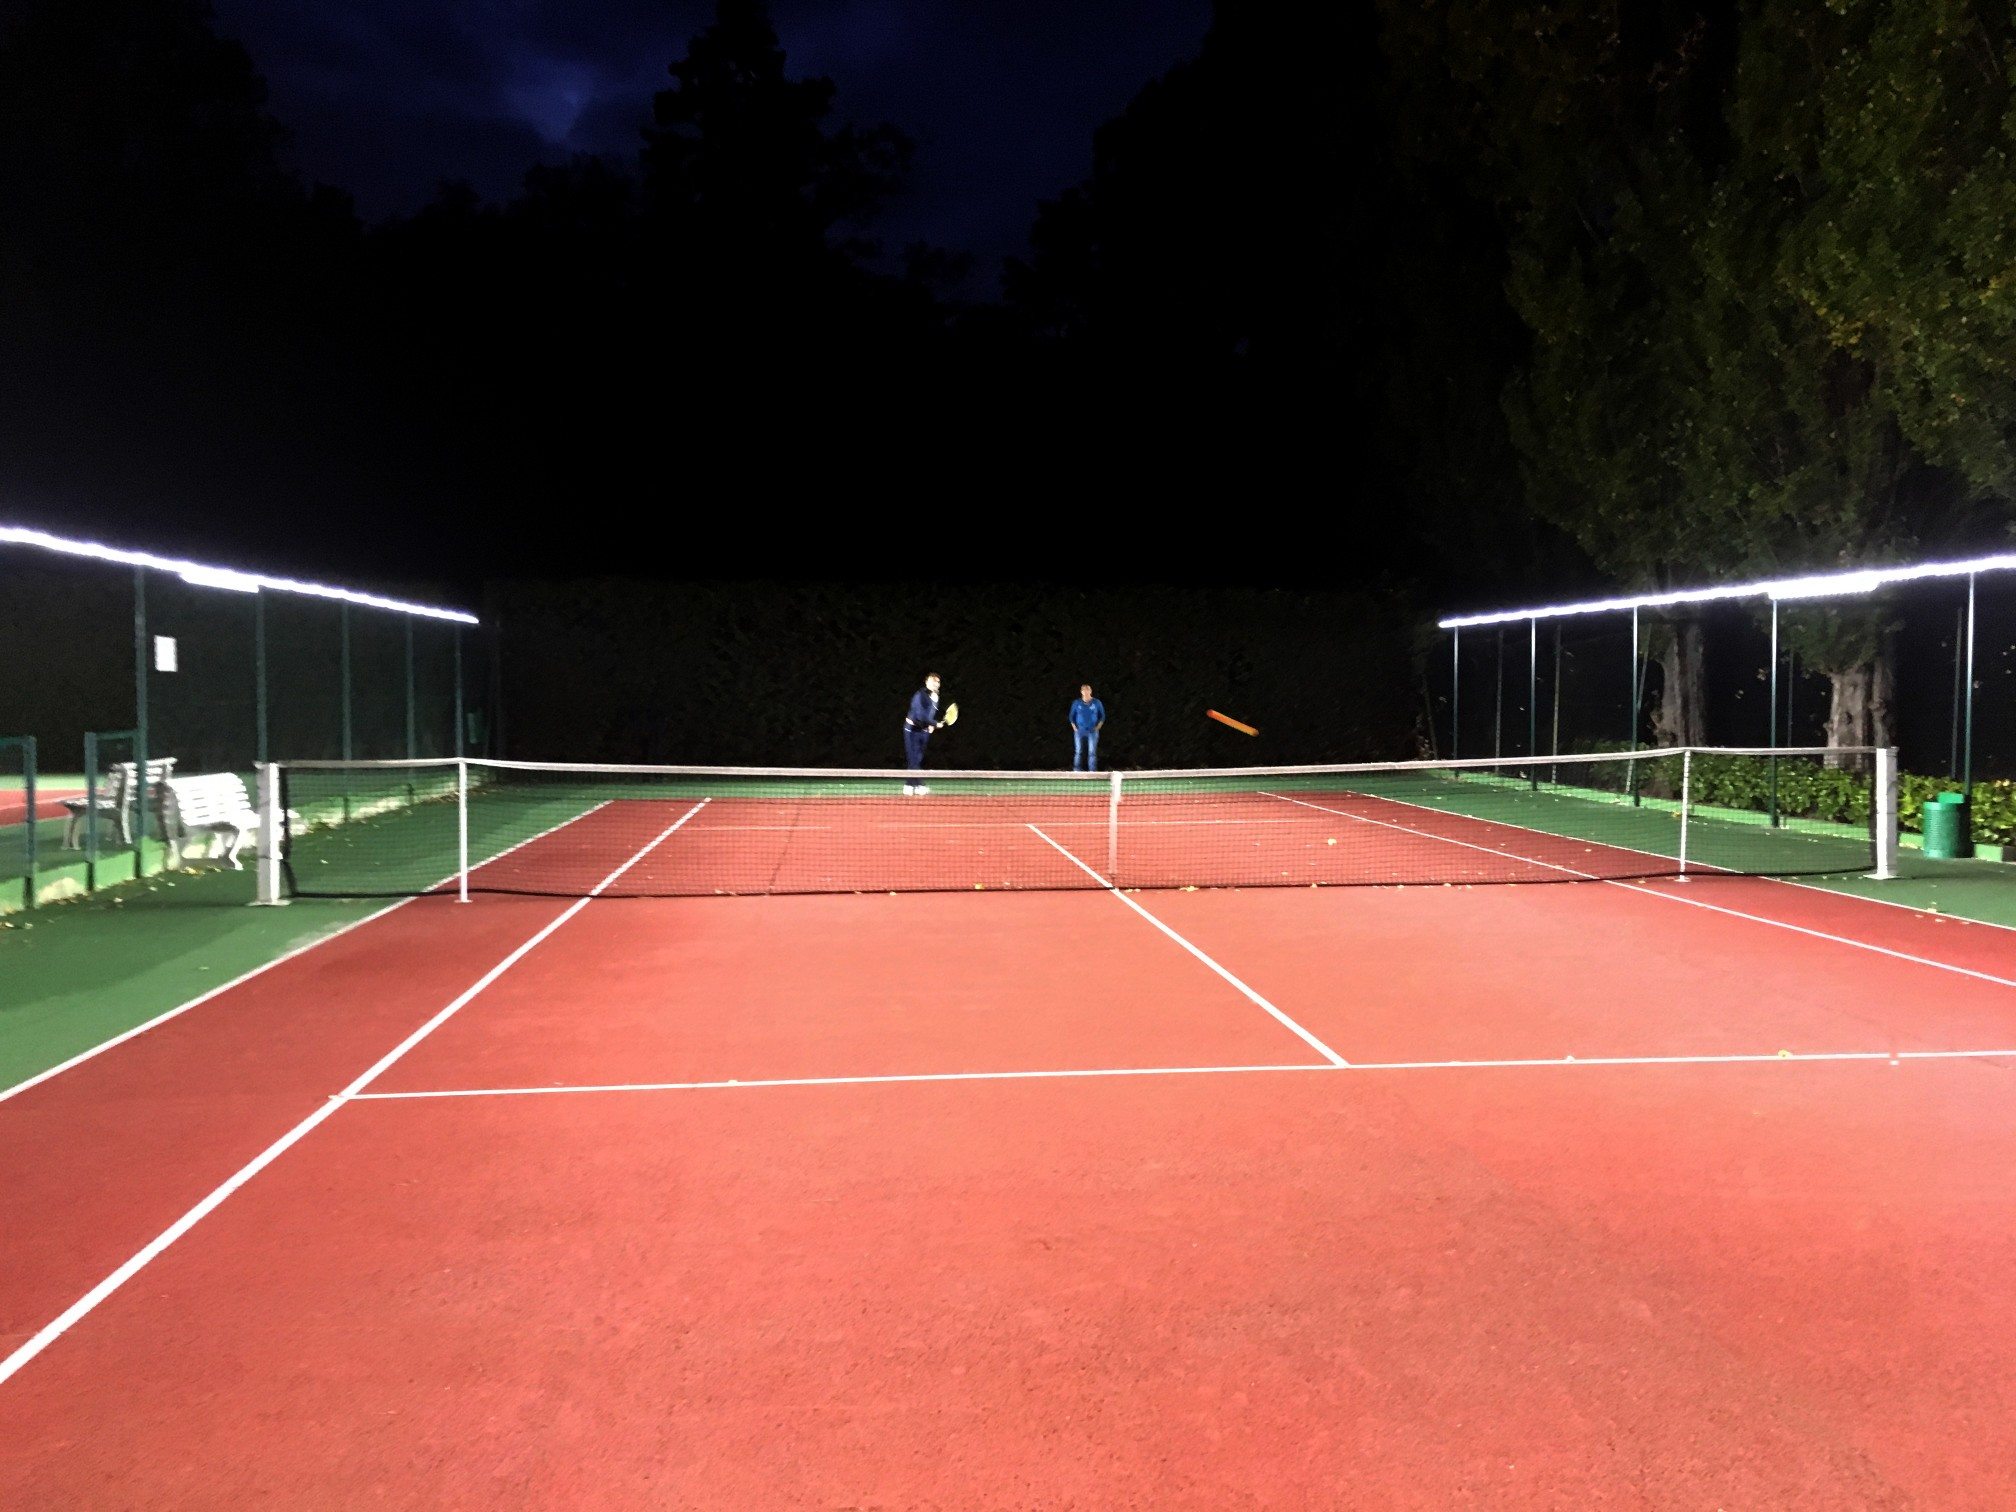 Tweener®'s innovative tennis court floodlights provide guaranteed glare-free play.